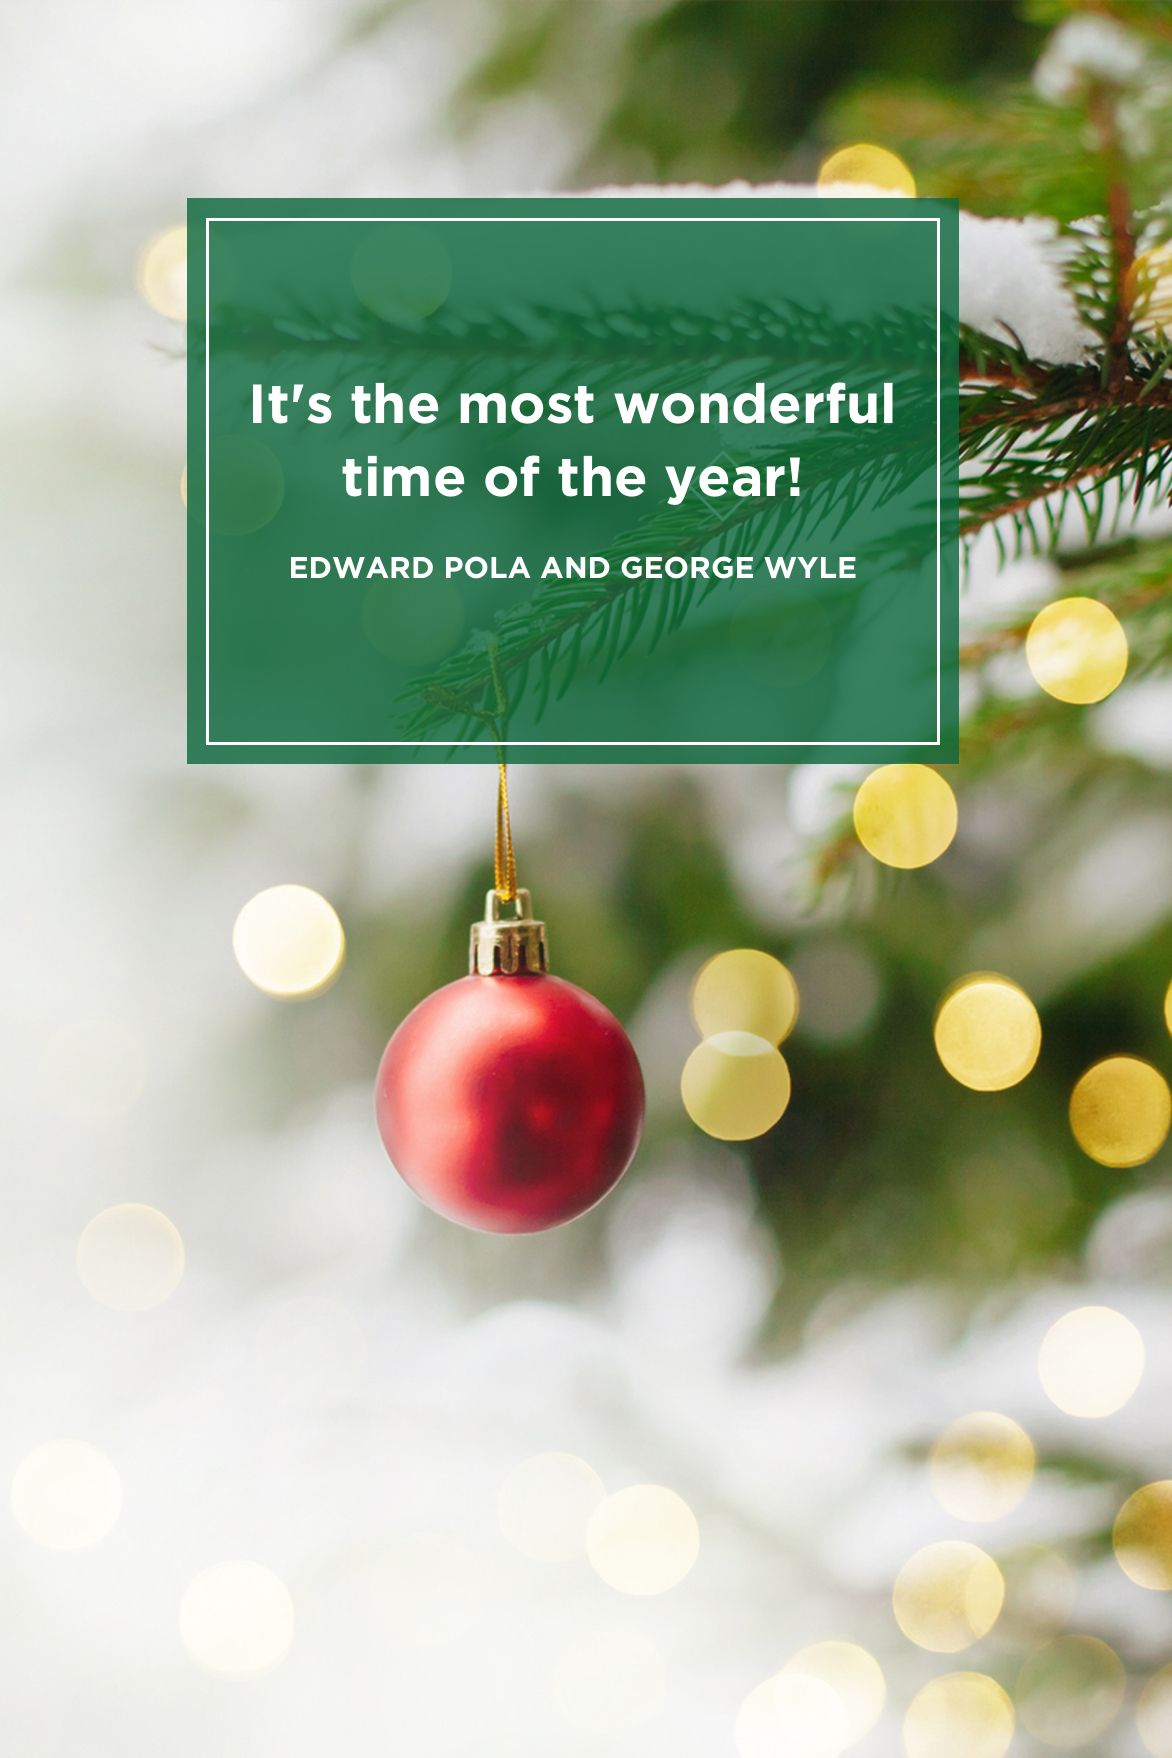 75 Best Christmas Quotes - Most Inspiring & Festive Holiday Sayings